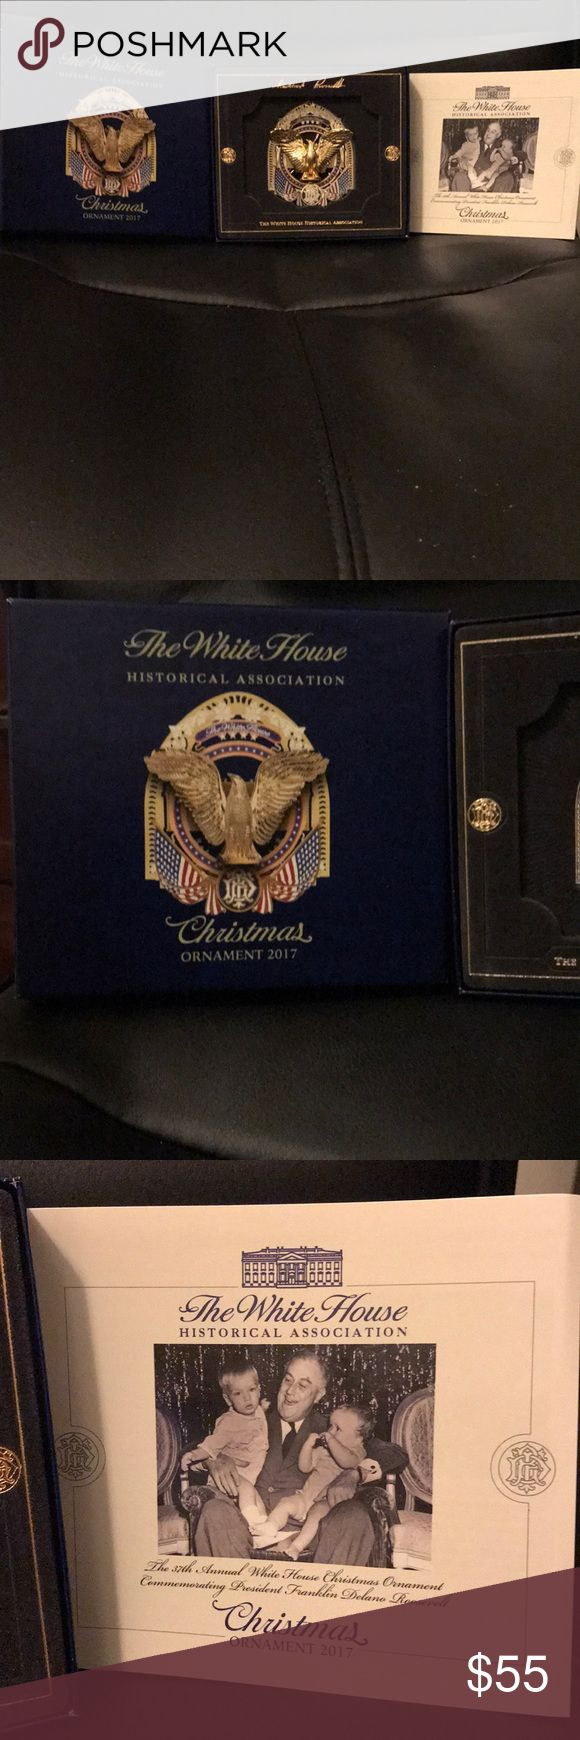 The The White House Christmas Ornament 2017 BNWT The White House Historical Association Christmas Ornament 2017. A collectors item and a definite must have for this just past Christmas and every Christmas to come in the future. Free gift with purchase Other